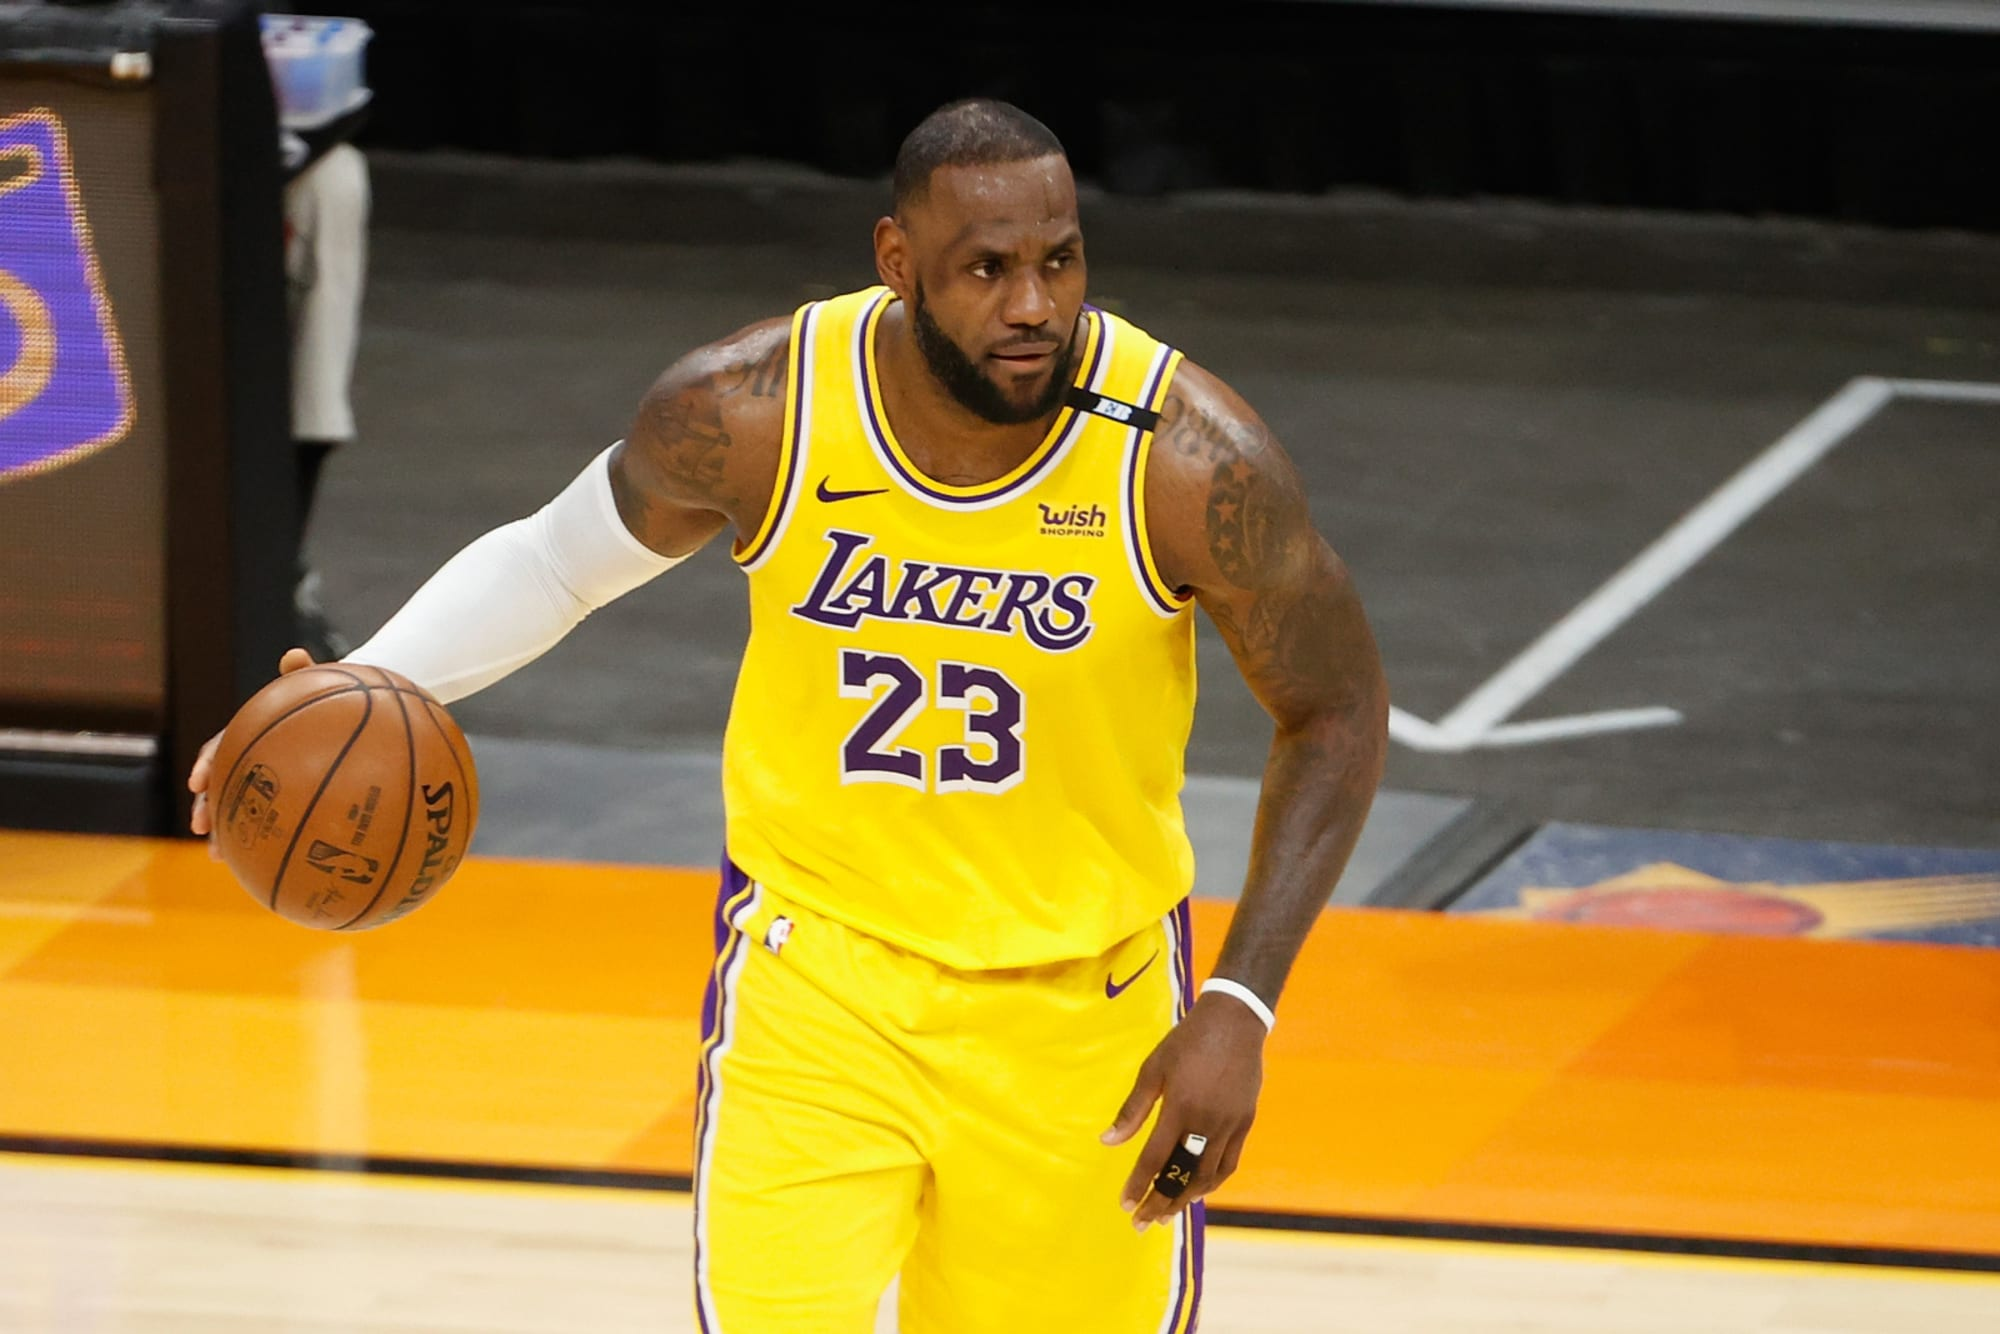 LeBron James reacts to Lakers signing Carmelo Anthony and other free agents